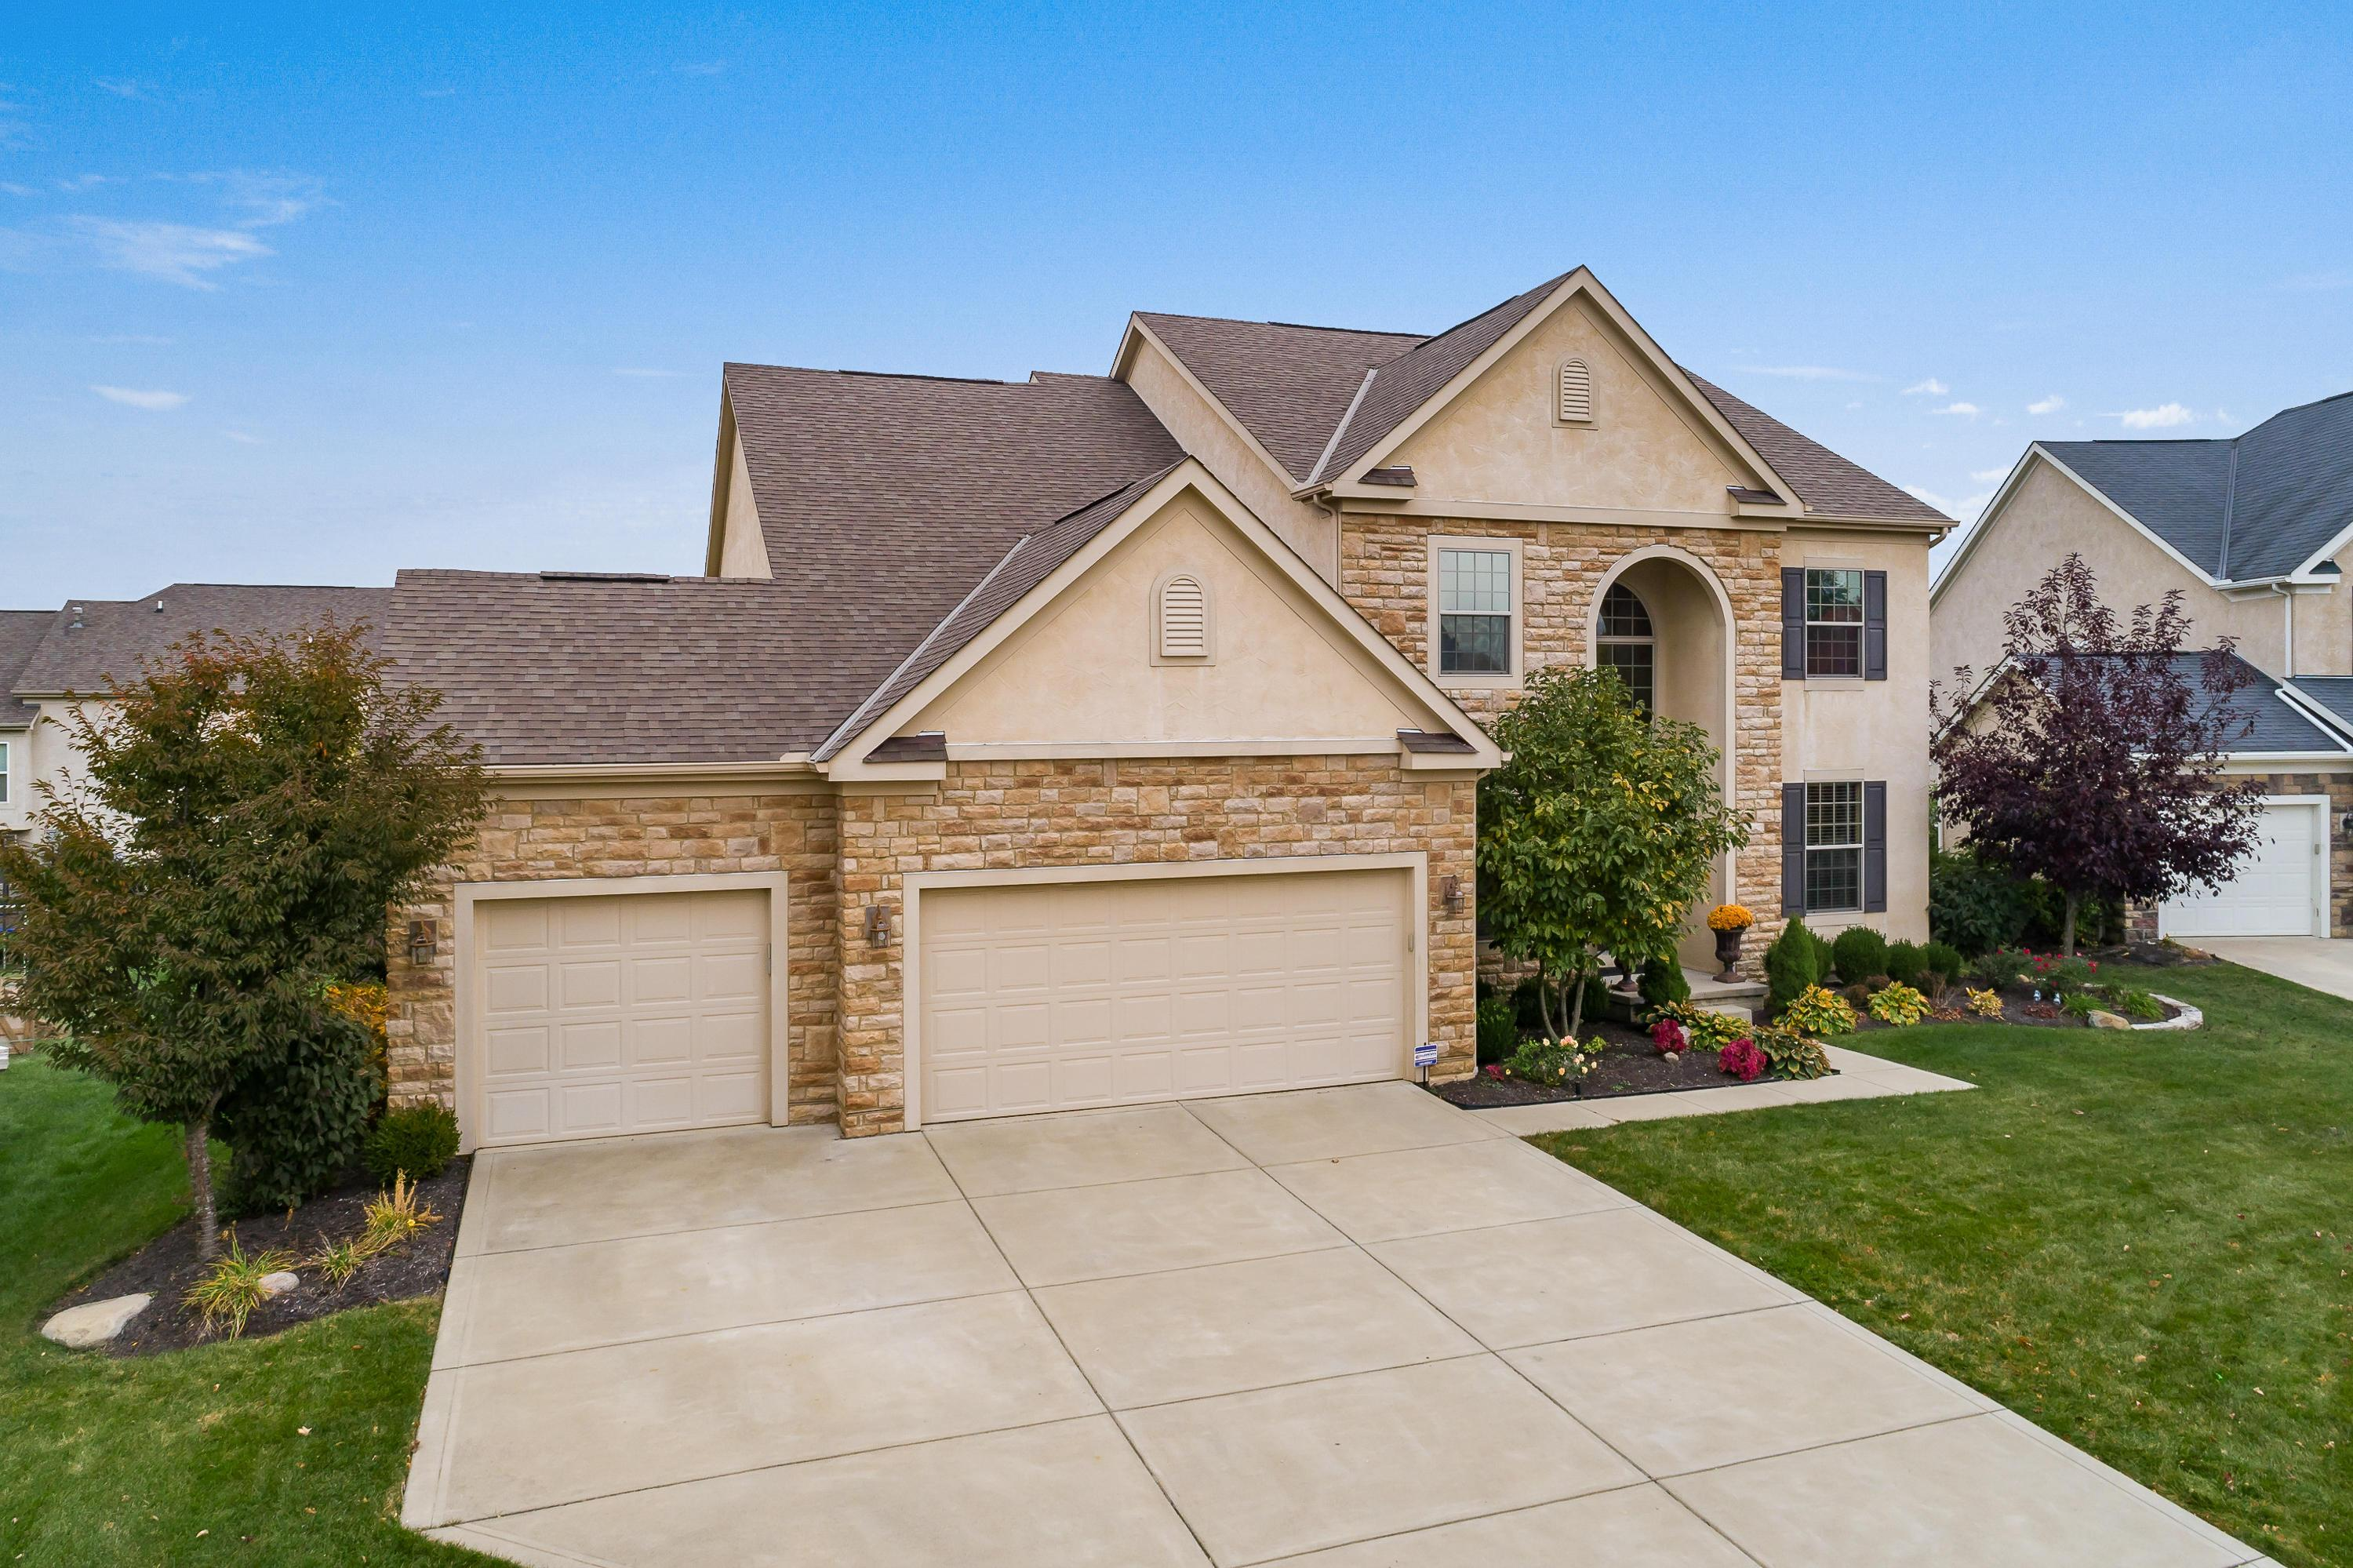 Photo of 5032 Silver Saddle Court, Hilliard, OH 43026